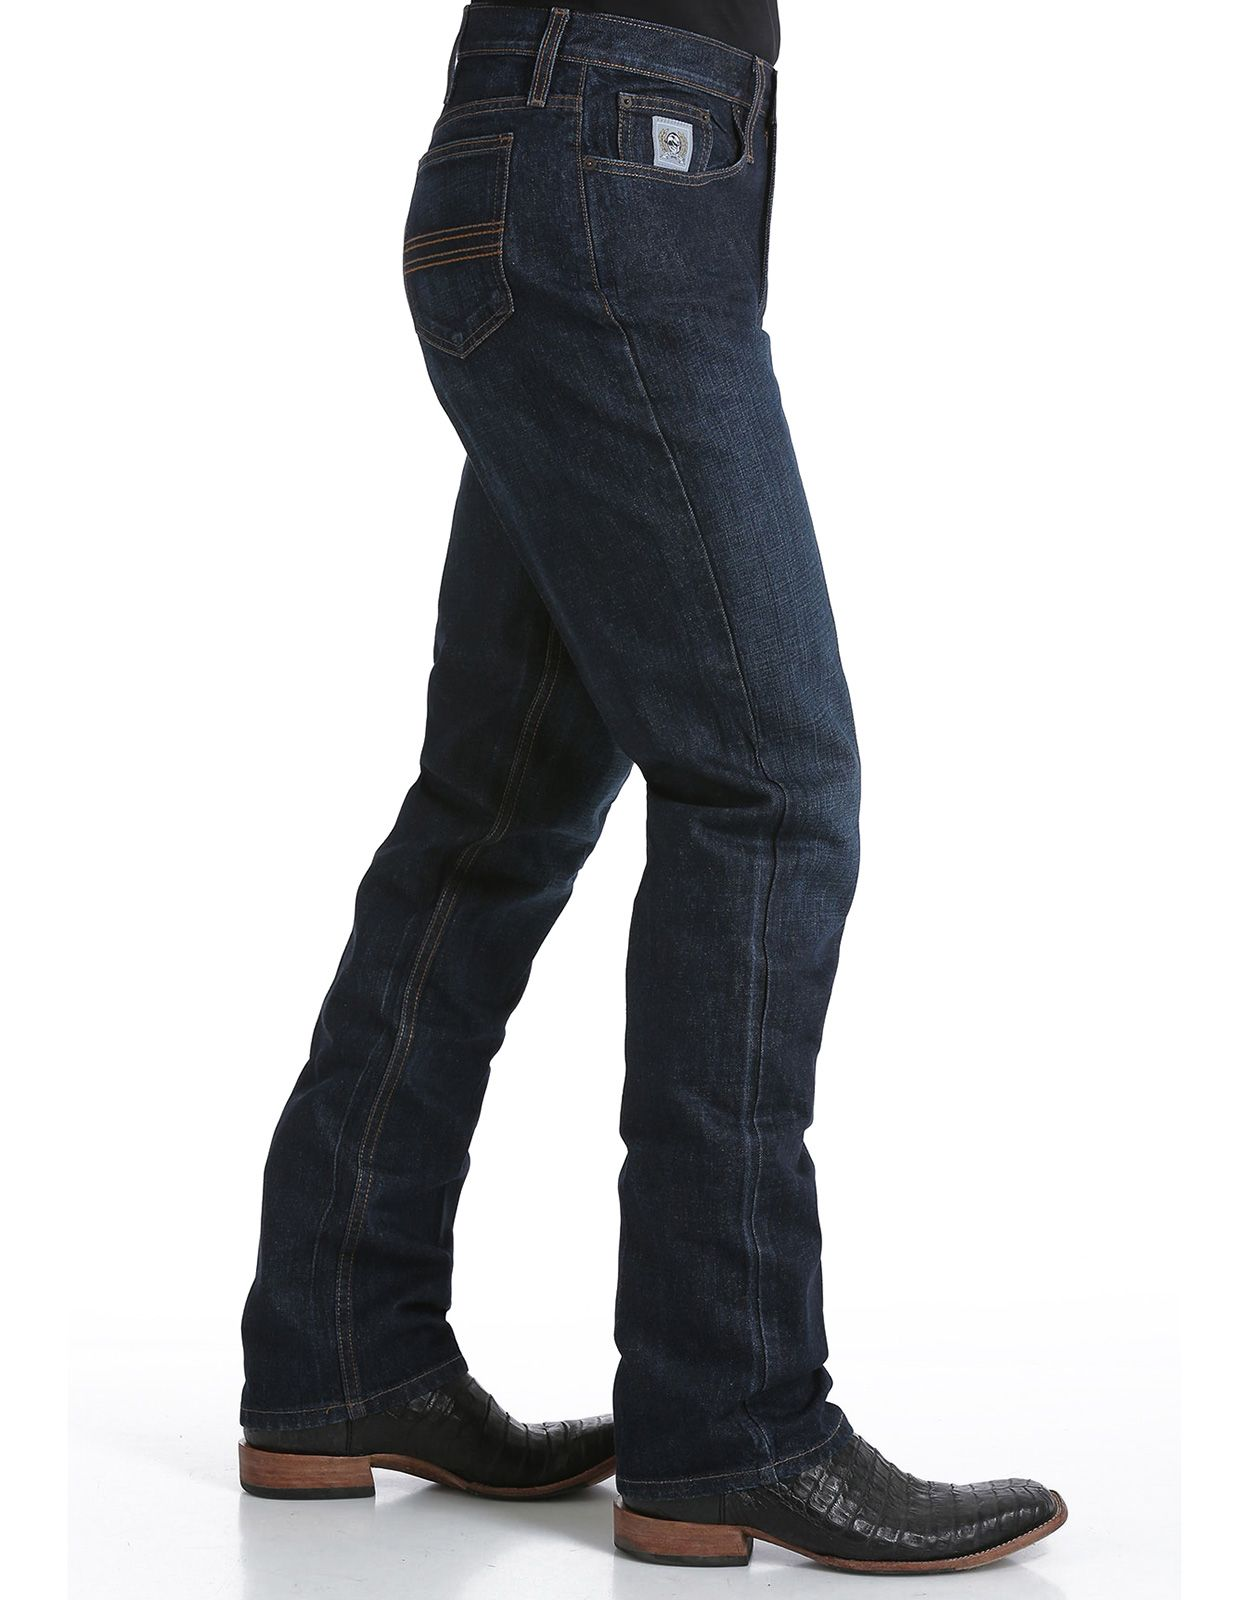 Cinch Men's Silver Label Mid Rise Slim Fit Straight Leg Jeans - Dark Stonewash